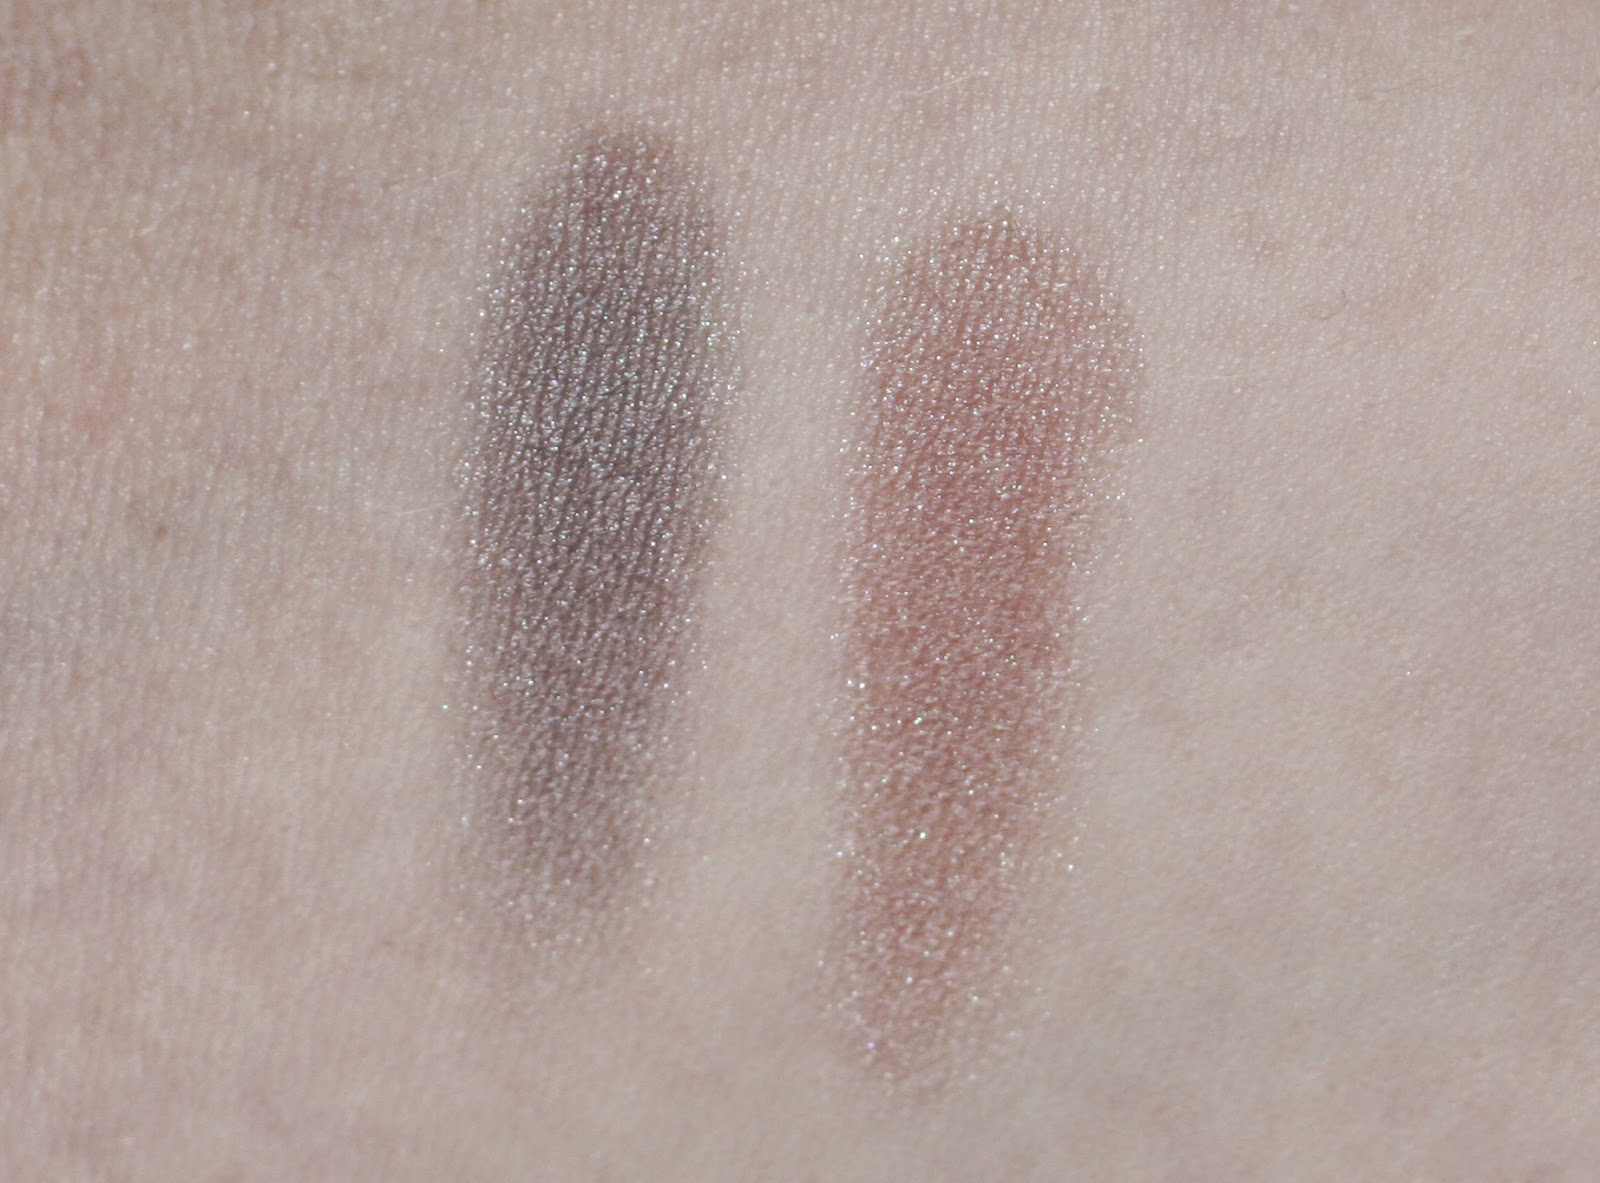 NYX Baked Eyeshadow in Death Star and Vesper Swatches & Review